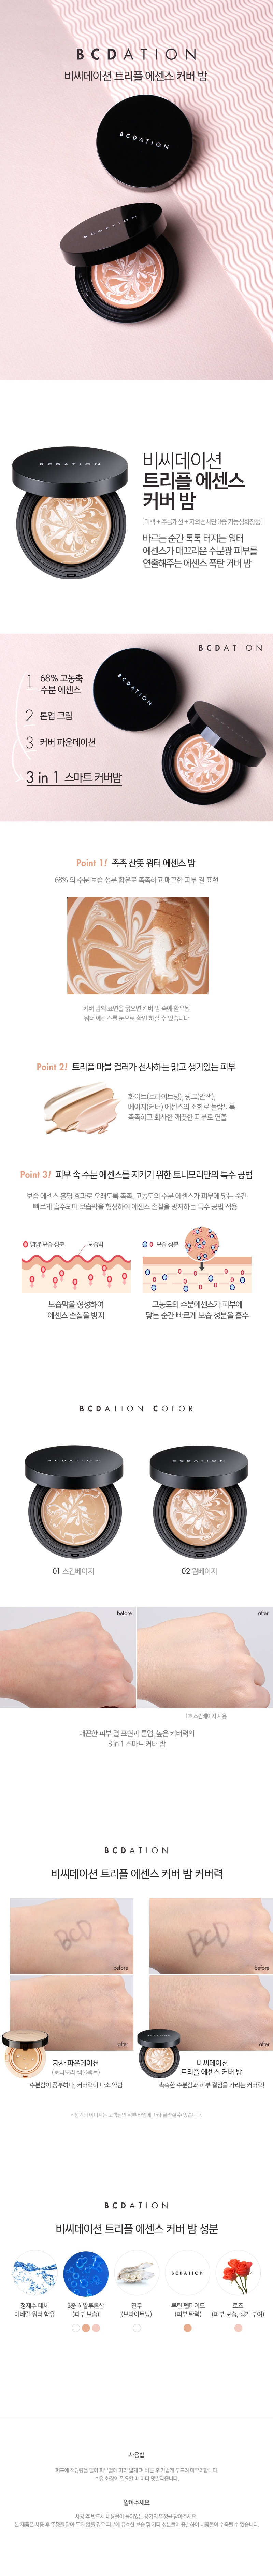 Tony Moly BCDation Triple Essence Cover Balm korean cosmetic makeup product online shop malaysia spain portugal1